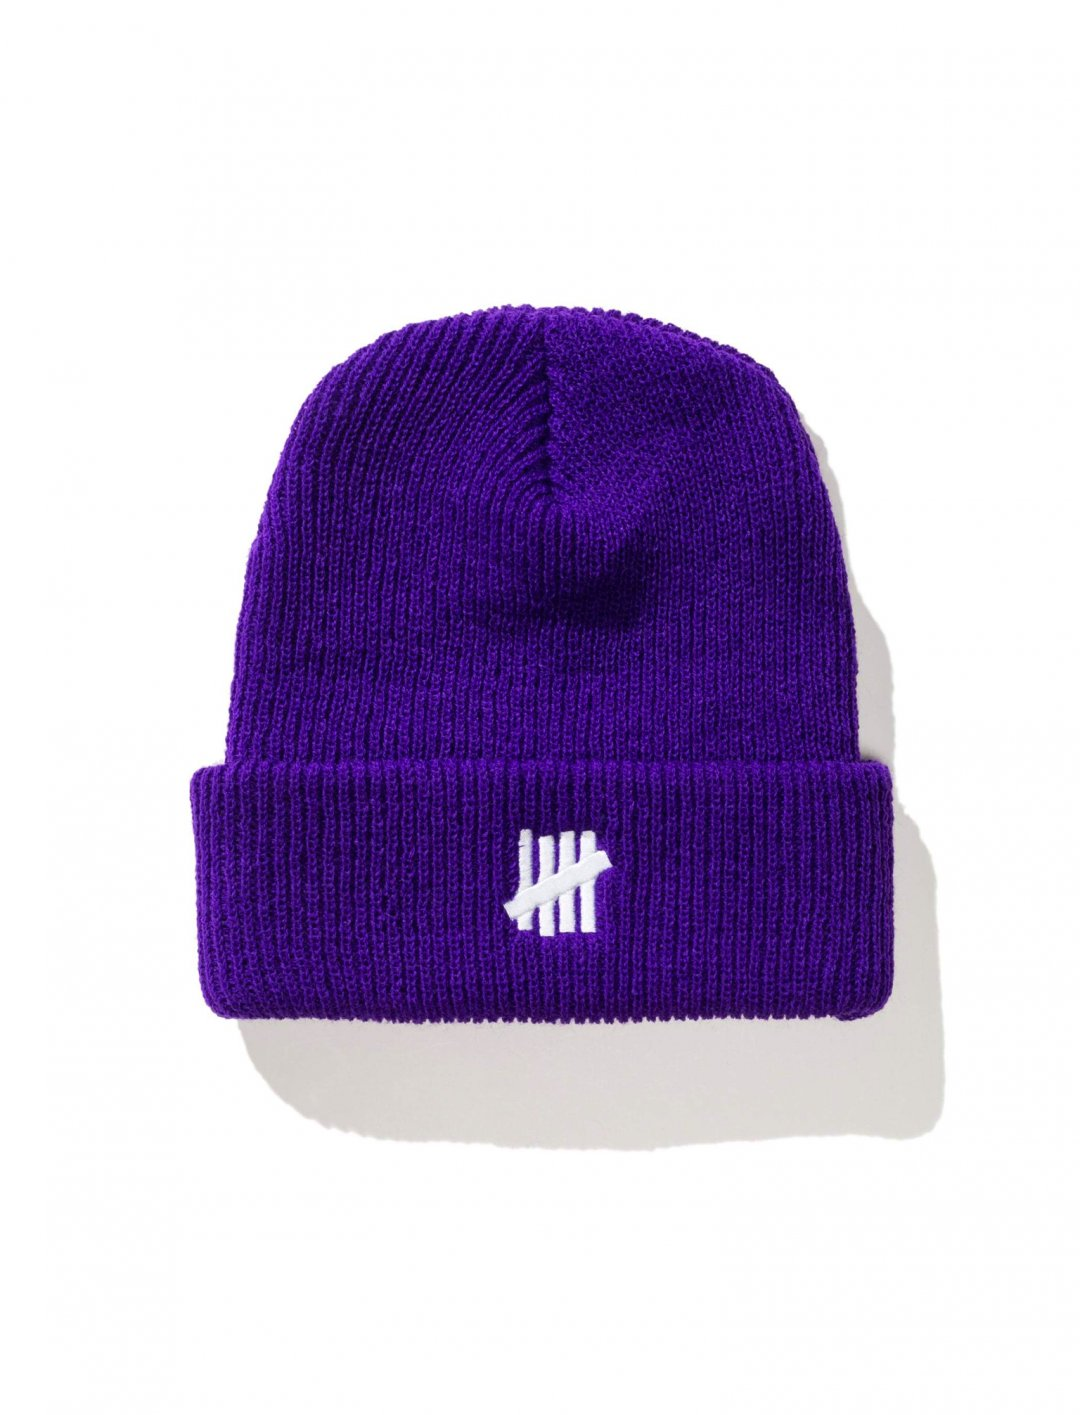 "Chris Brown's Beanie {""id"":5,""product_section_id"":1,""name"":""Clothing"",""order"":5} Undefeated"